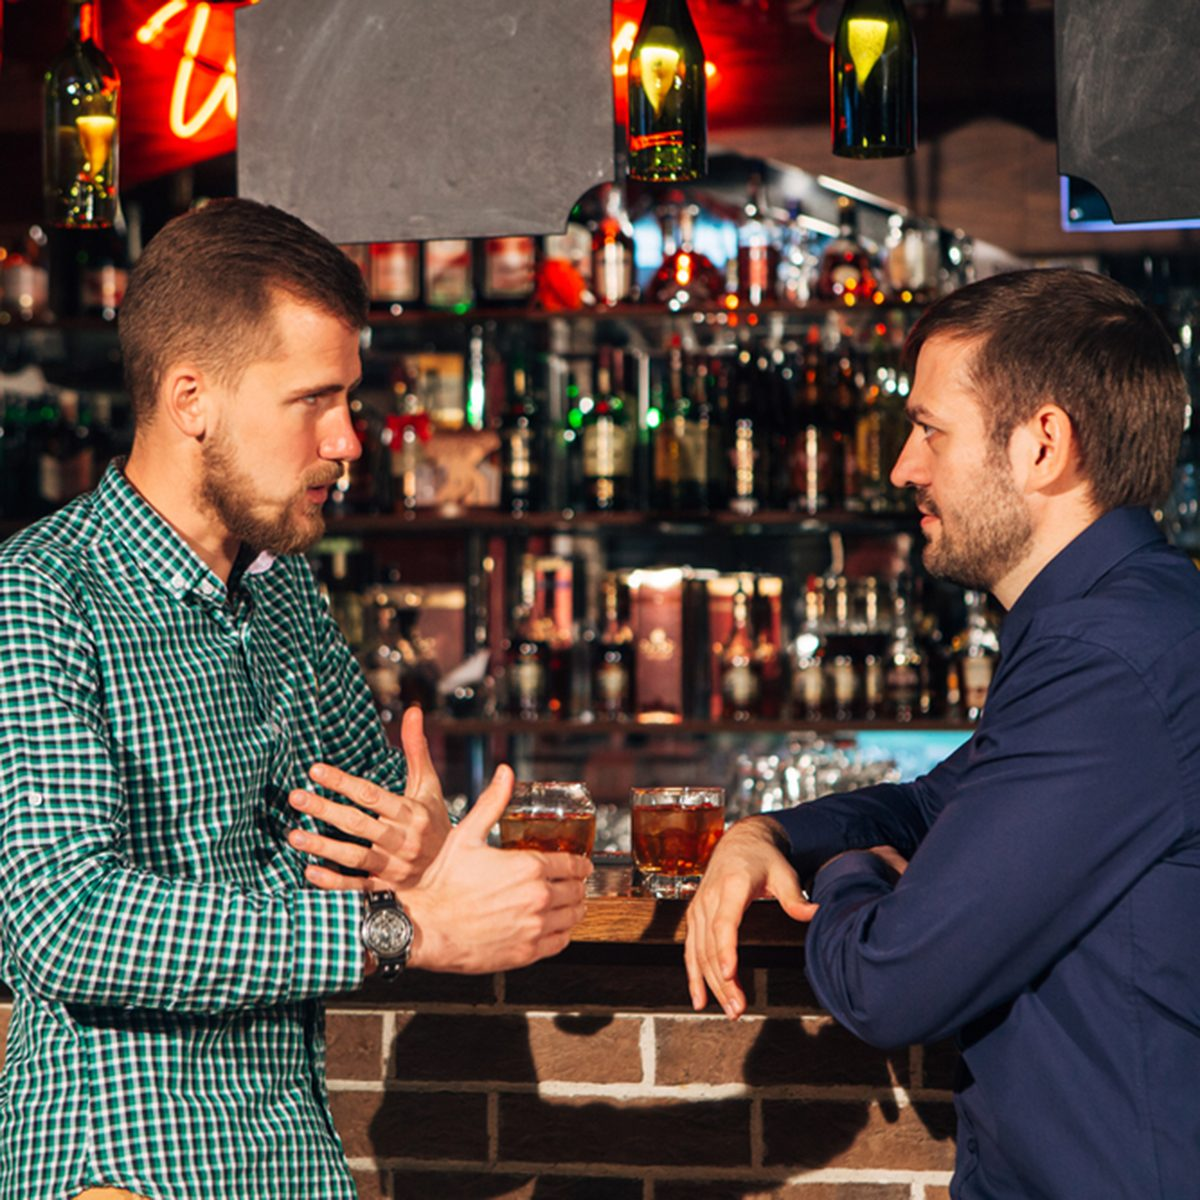 two young man talking at counter. friends standing in bar and drinking whisky; Shutterstock ID 542334136; Job (TFH, TOH, RD, BNB, CWM, CM): TOH